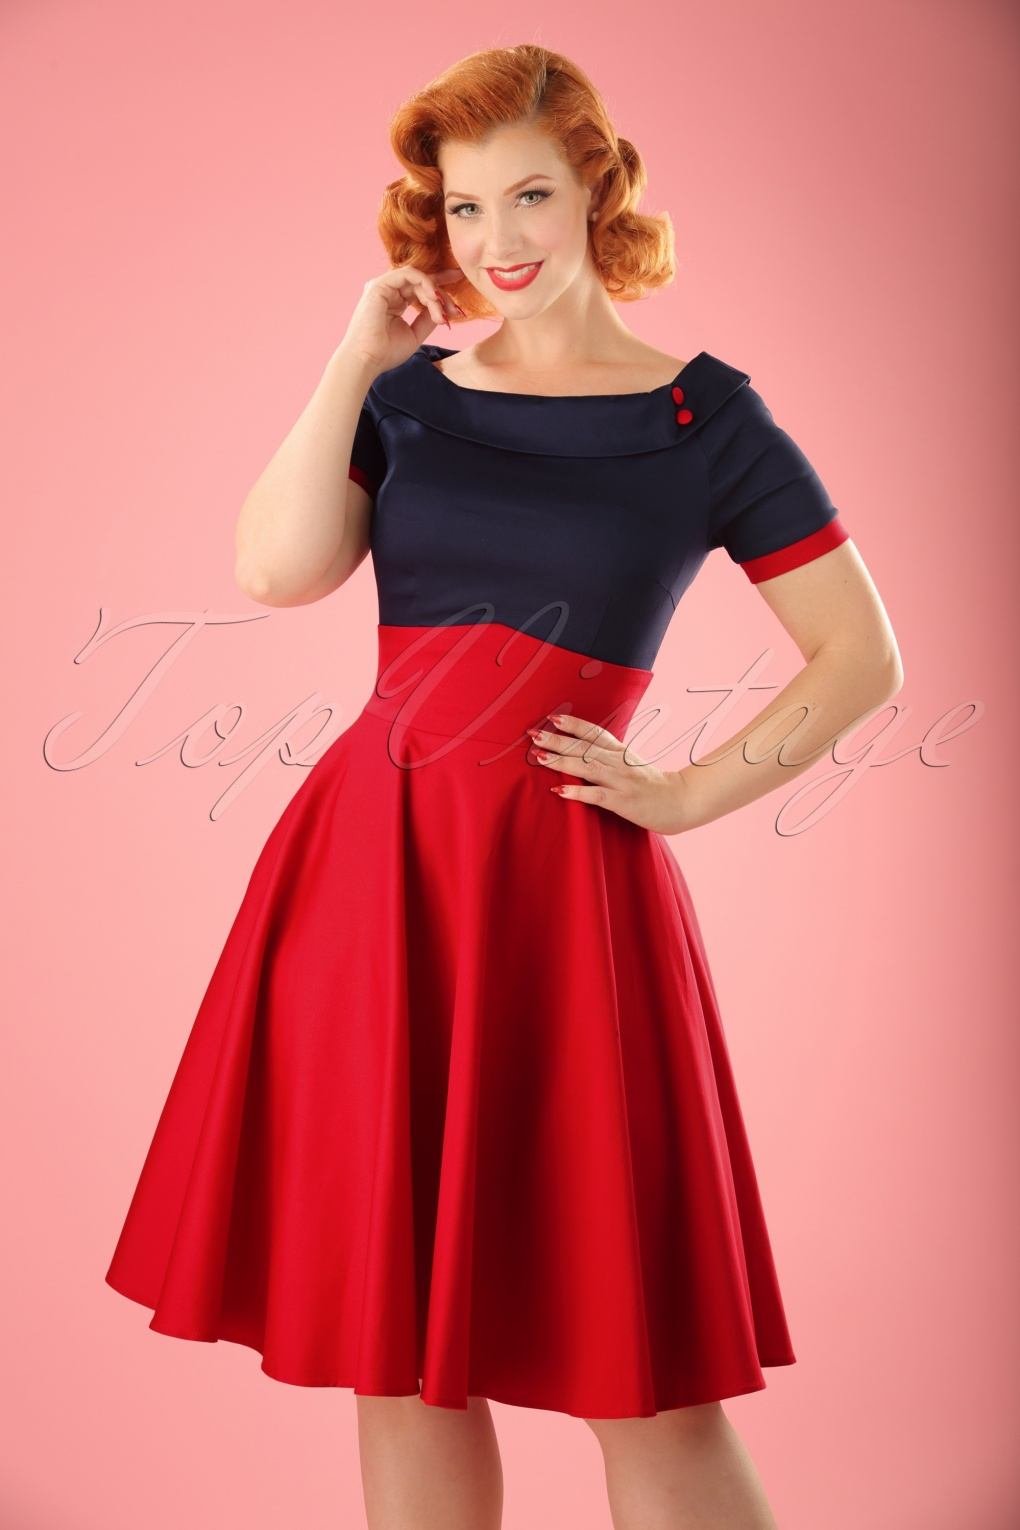 1960s Style Dresses- Retro Inspired Fashion 50s Darlene Swing Dress in Navy and Red £45.45 AT vintagedancer.com